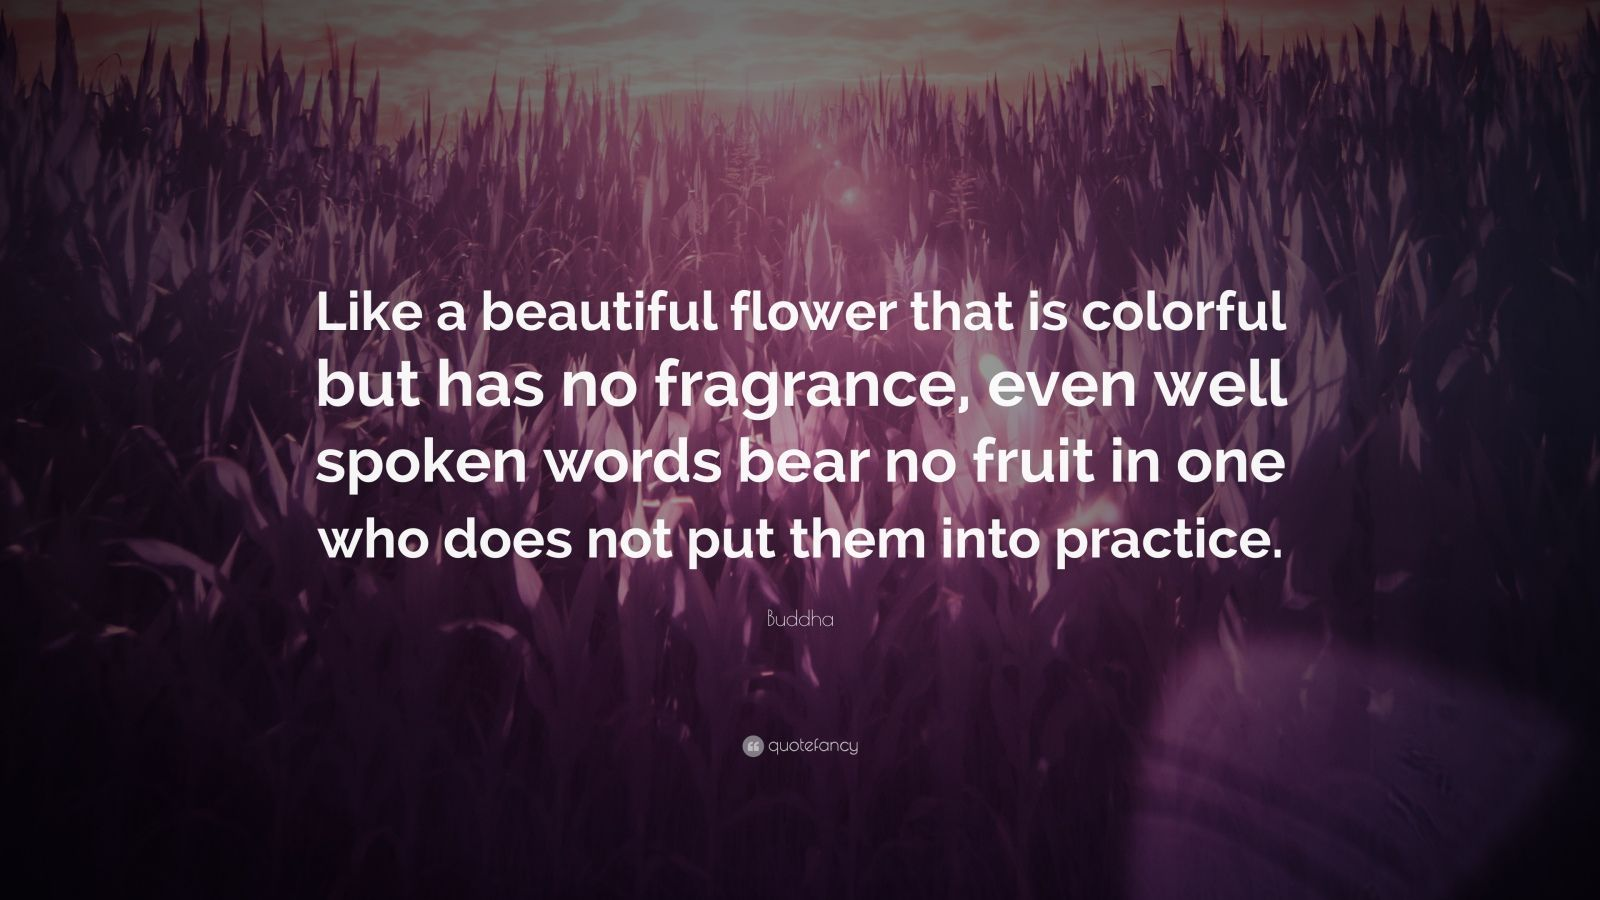 """Buddha Quote: """"Like a beautiful flower that is colorful but has no fragrance, even well spoken words bear no fruit in one who does not put them into practice."""""""